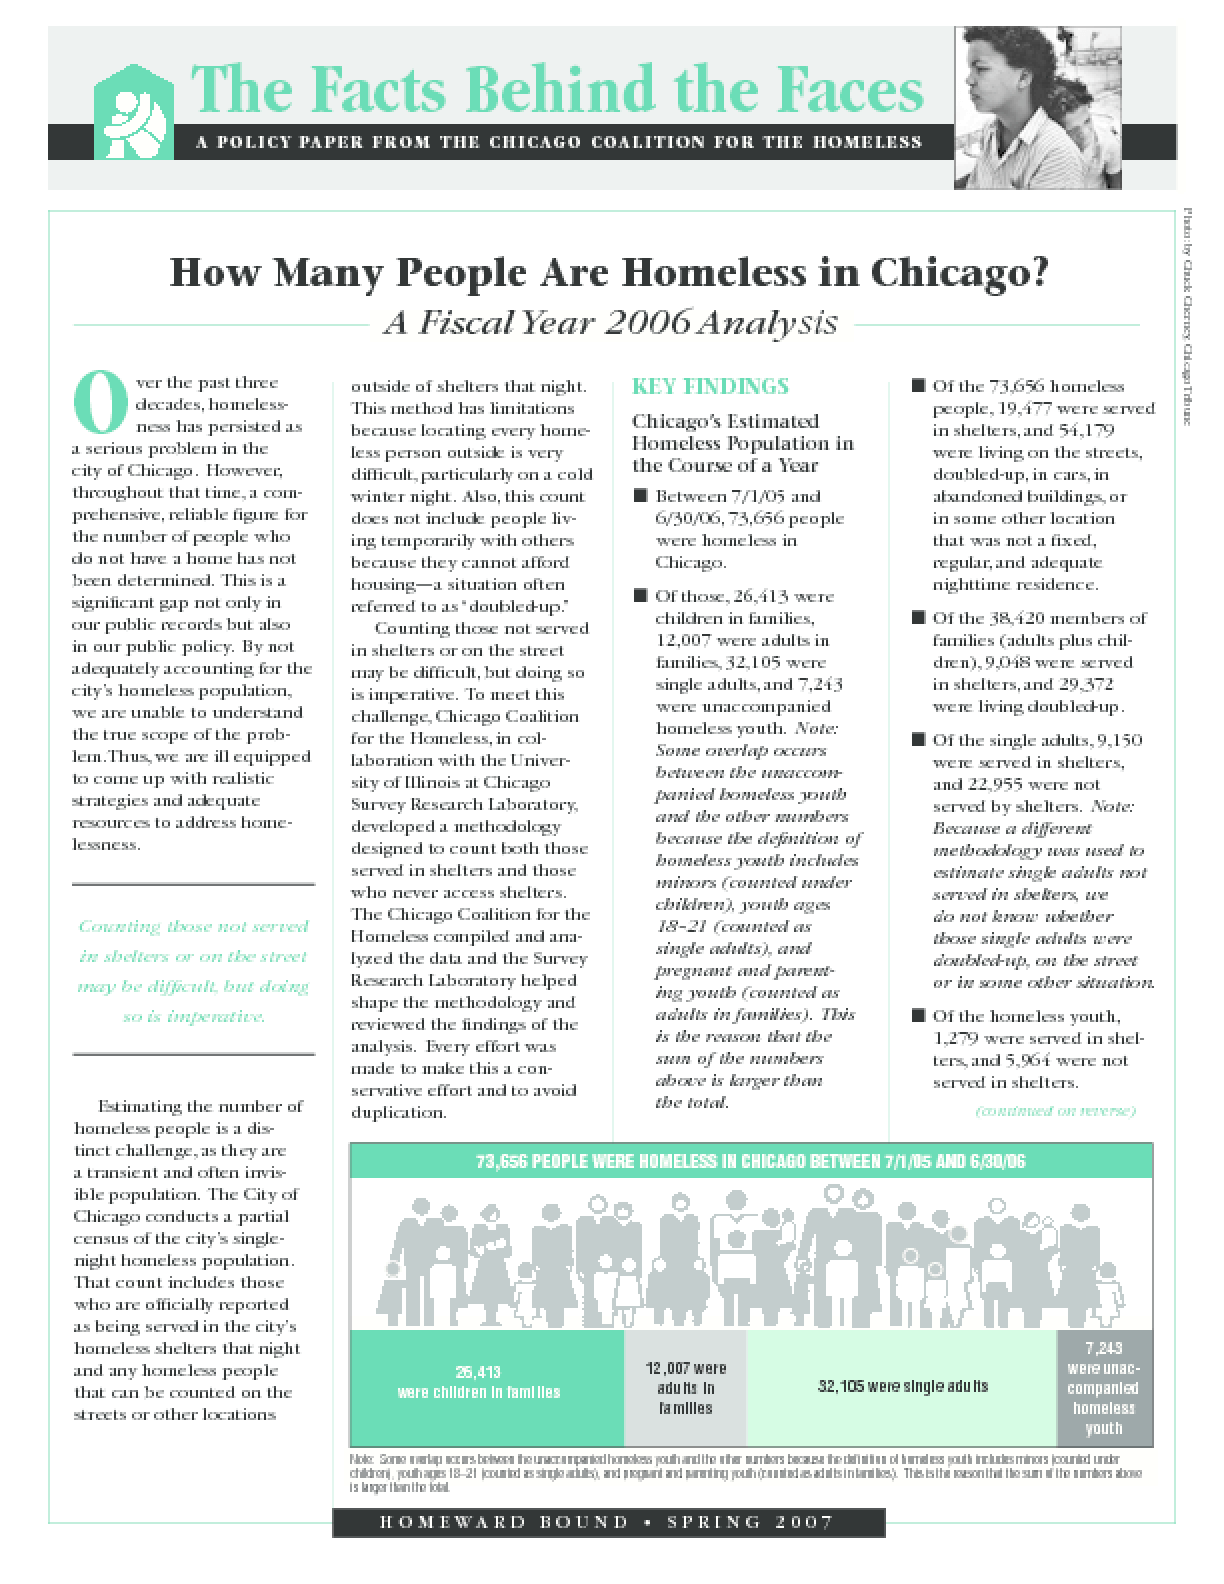 How Many People Are Homeless in Chicago? A Fiscal Year 2006 Analysis (key findings)